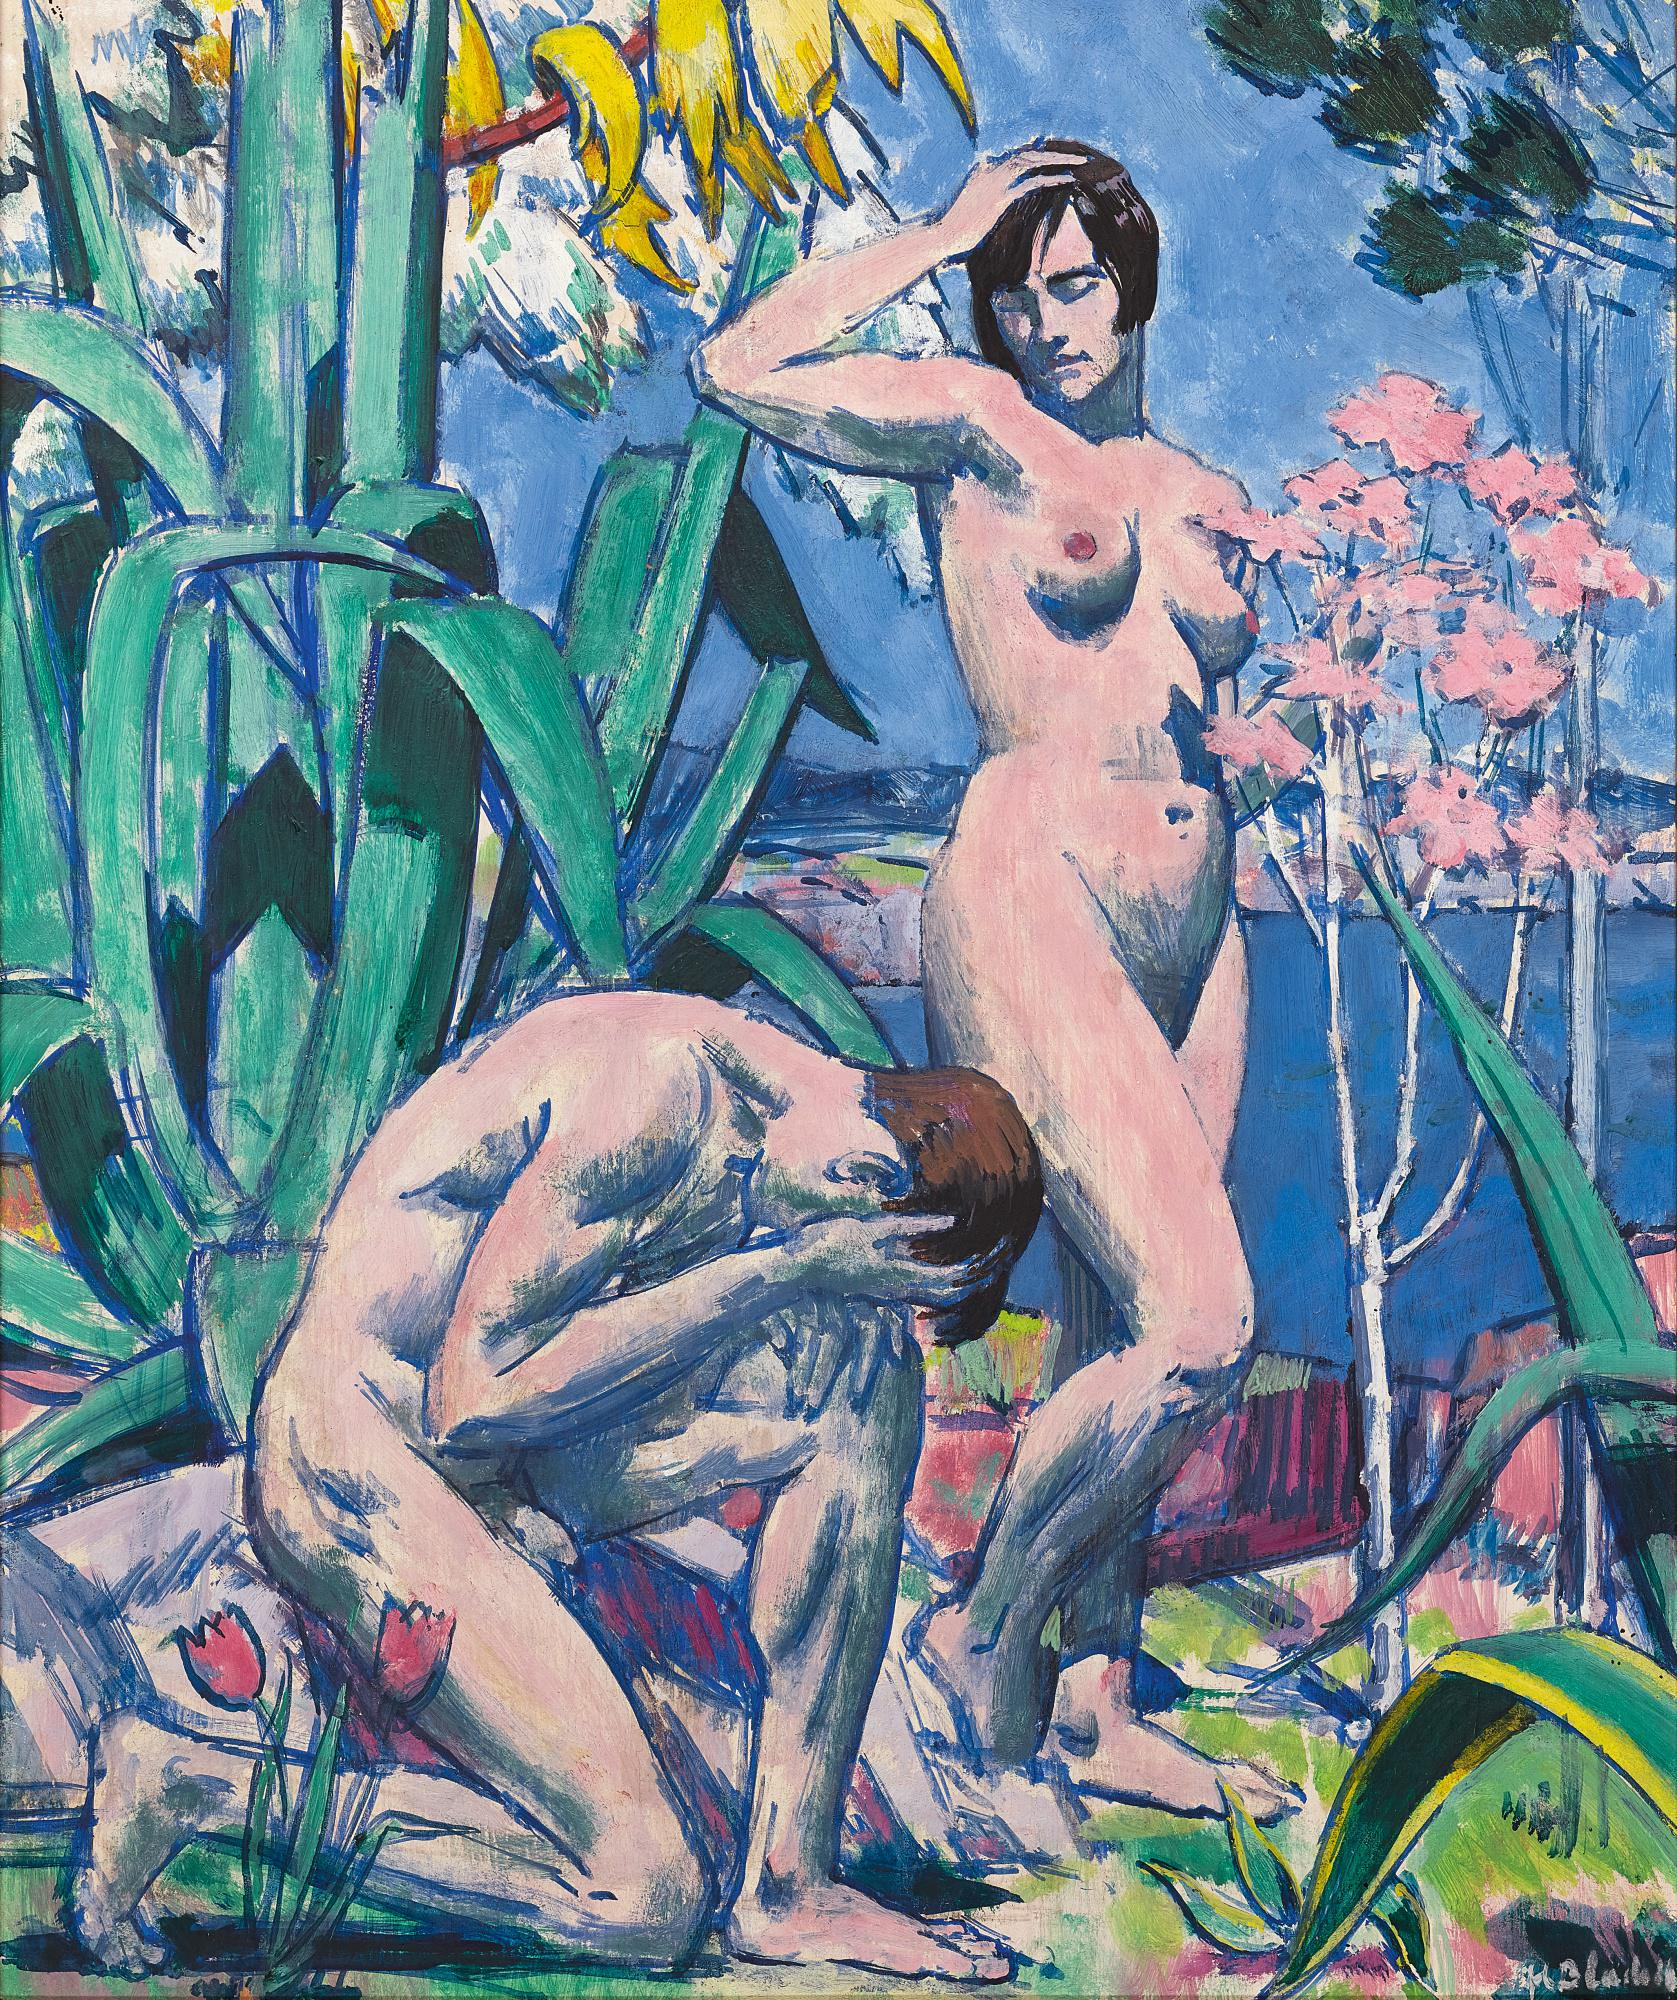 FRANCIS CAMPBELL BOILEAU CADELL, R.S.A., R.S.W.   ADAM AND EVE